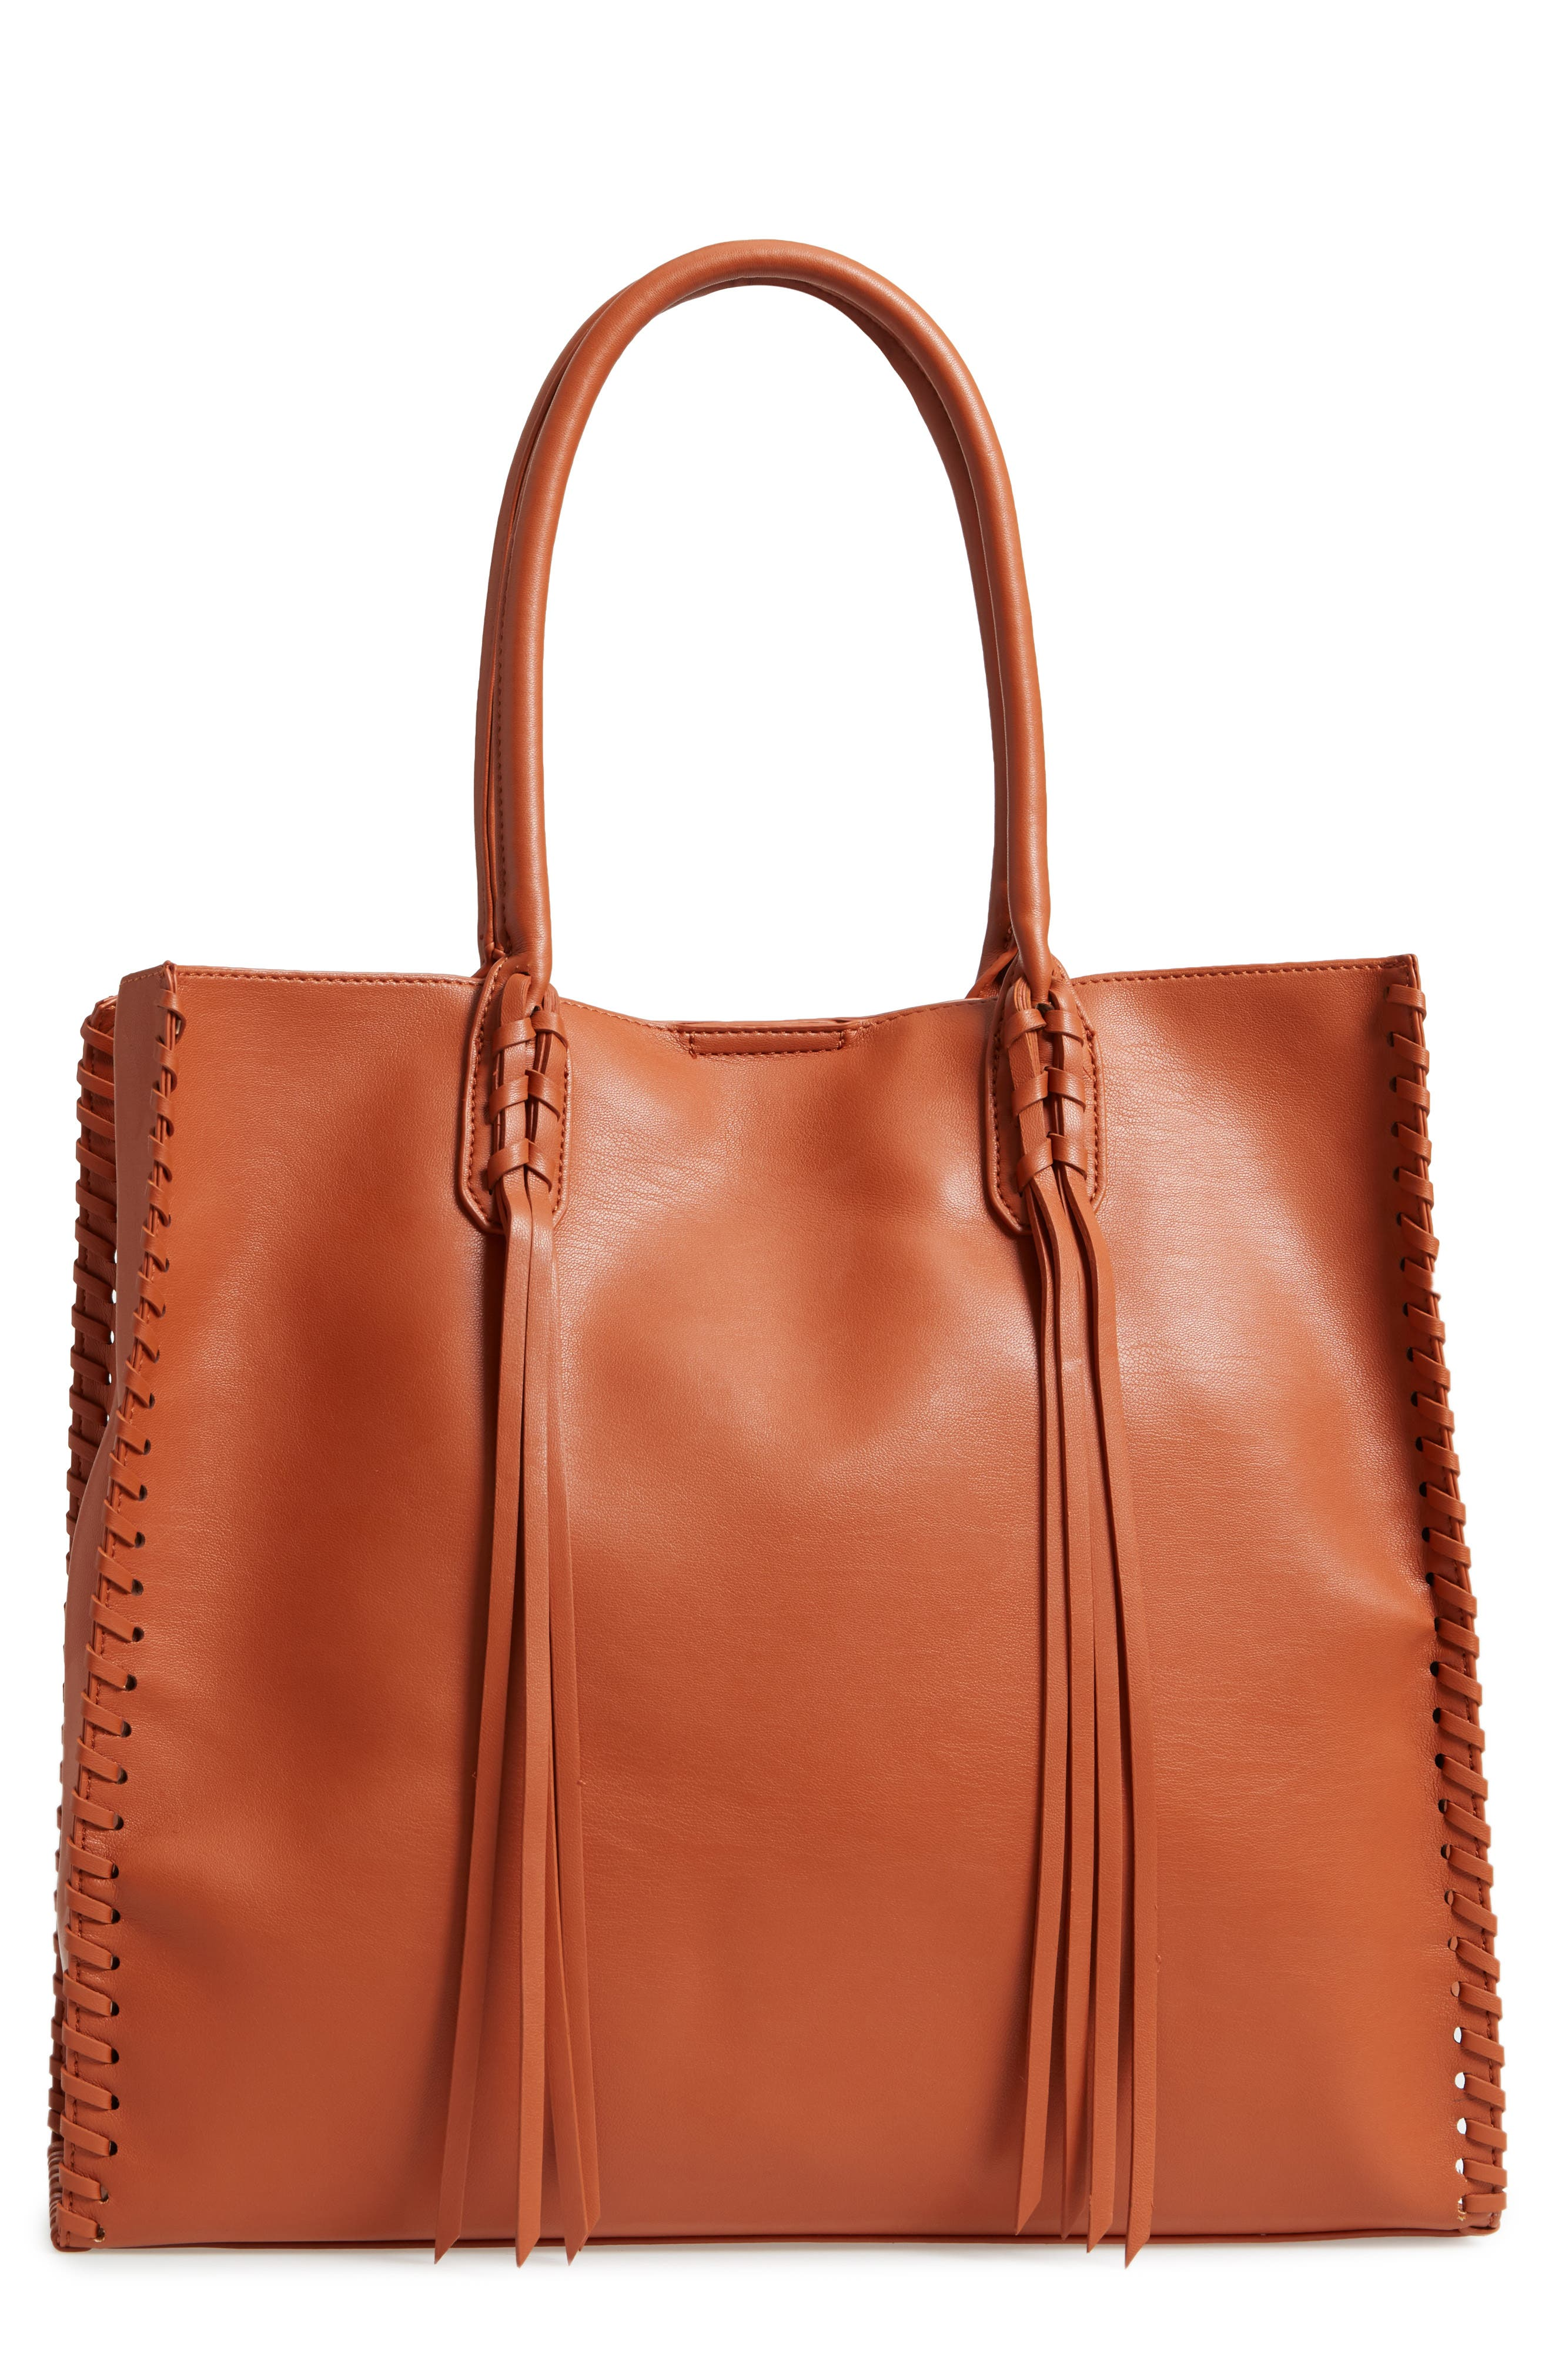 Cadence Faux Leather Whipstitch Tote,                         Main,                         color, 200